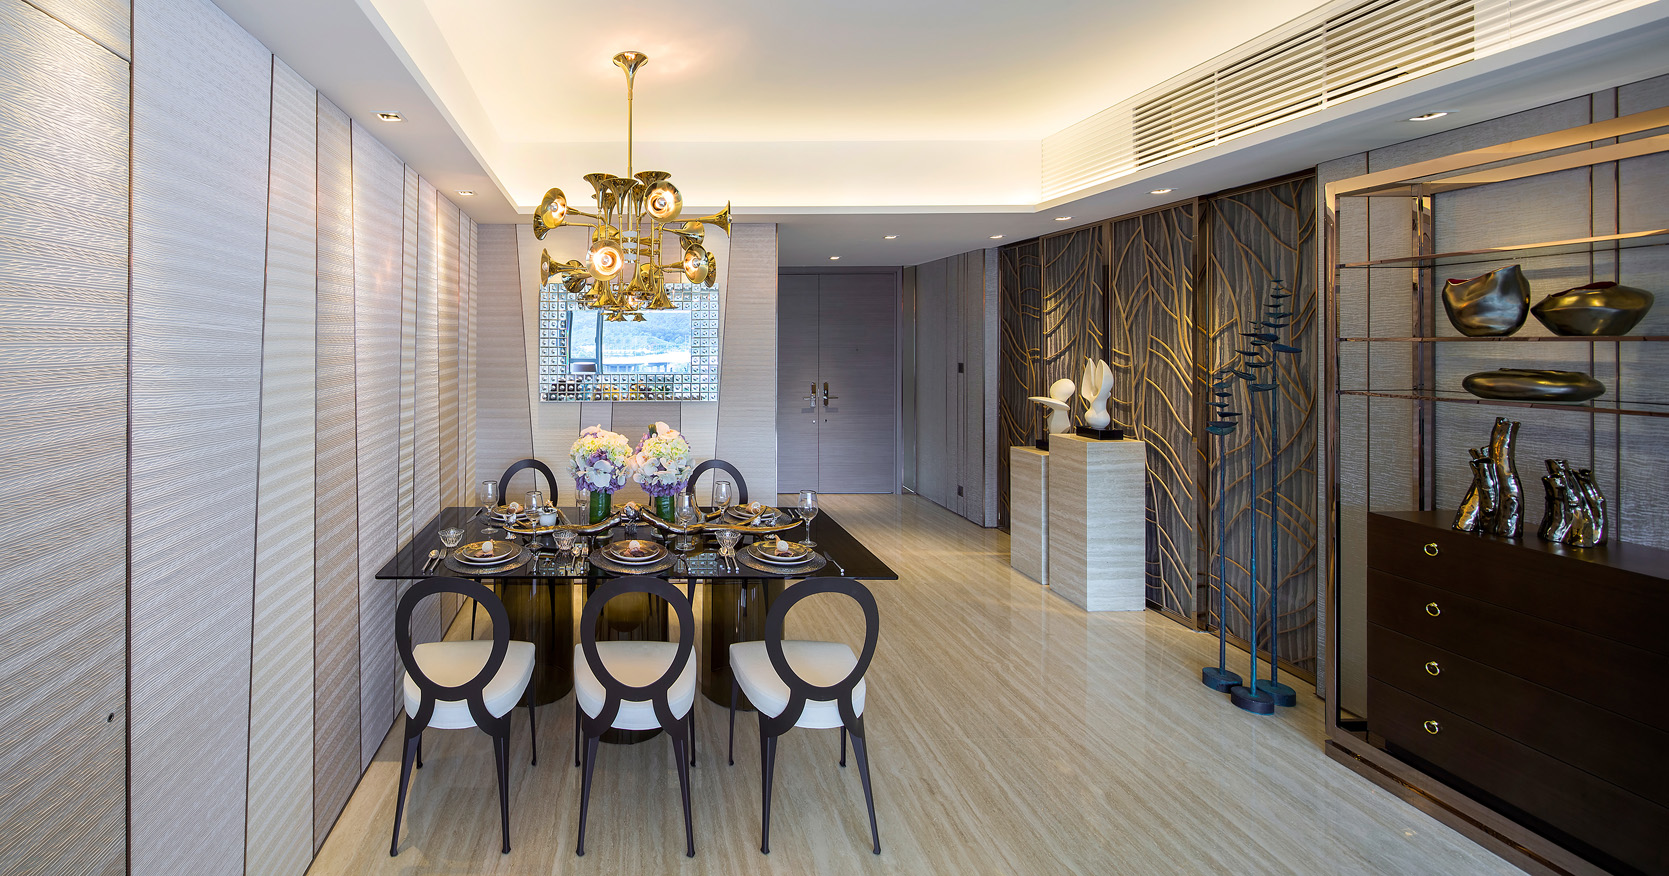 Dining room lighting ideas for a luxury interior kelly hoppen Top Interior Designer: the work of Kelly Hoppen Dining room lighting ideas Delightfull Botti kelly hoppen Top Interior Designer: the work of Kelly Hoppen Dining room lighting ideas Delightfull Botti